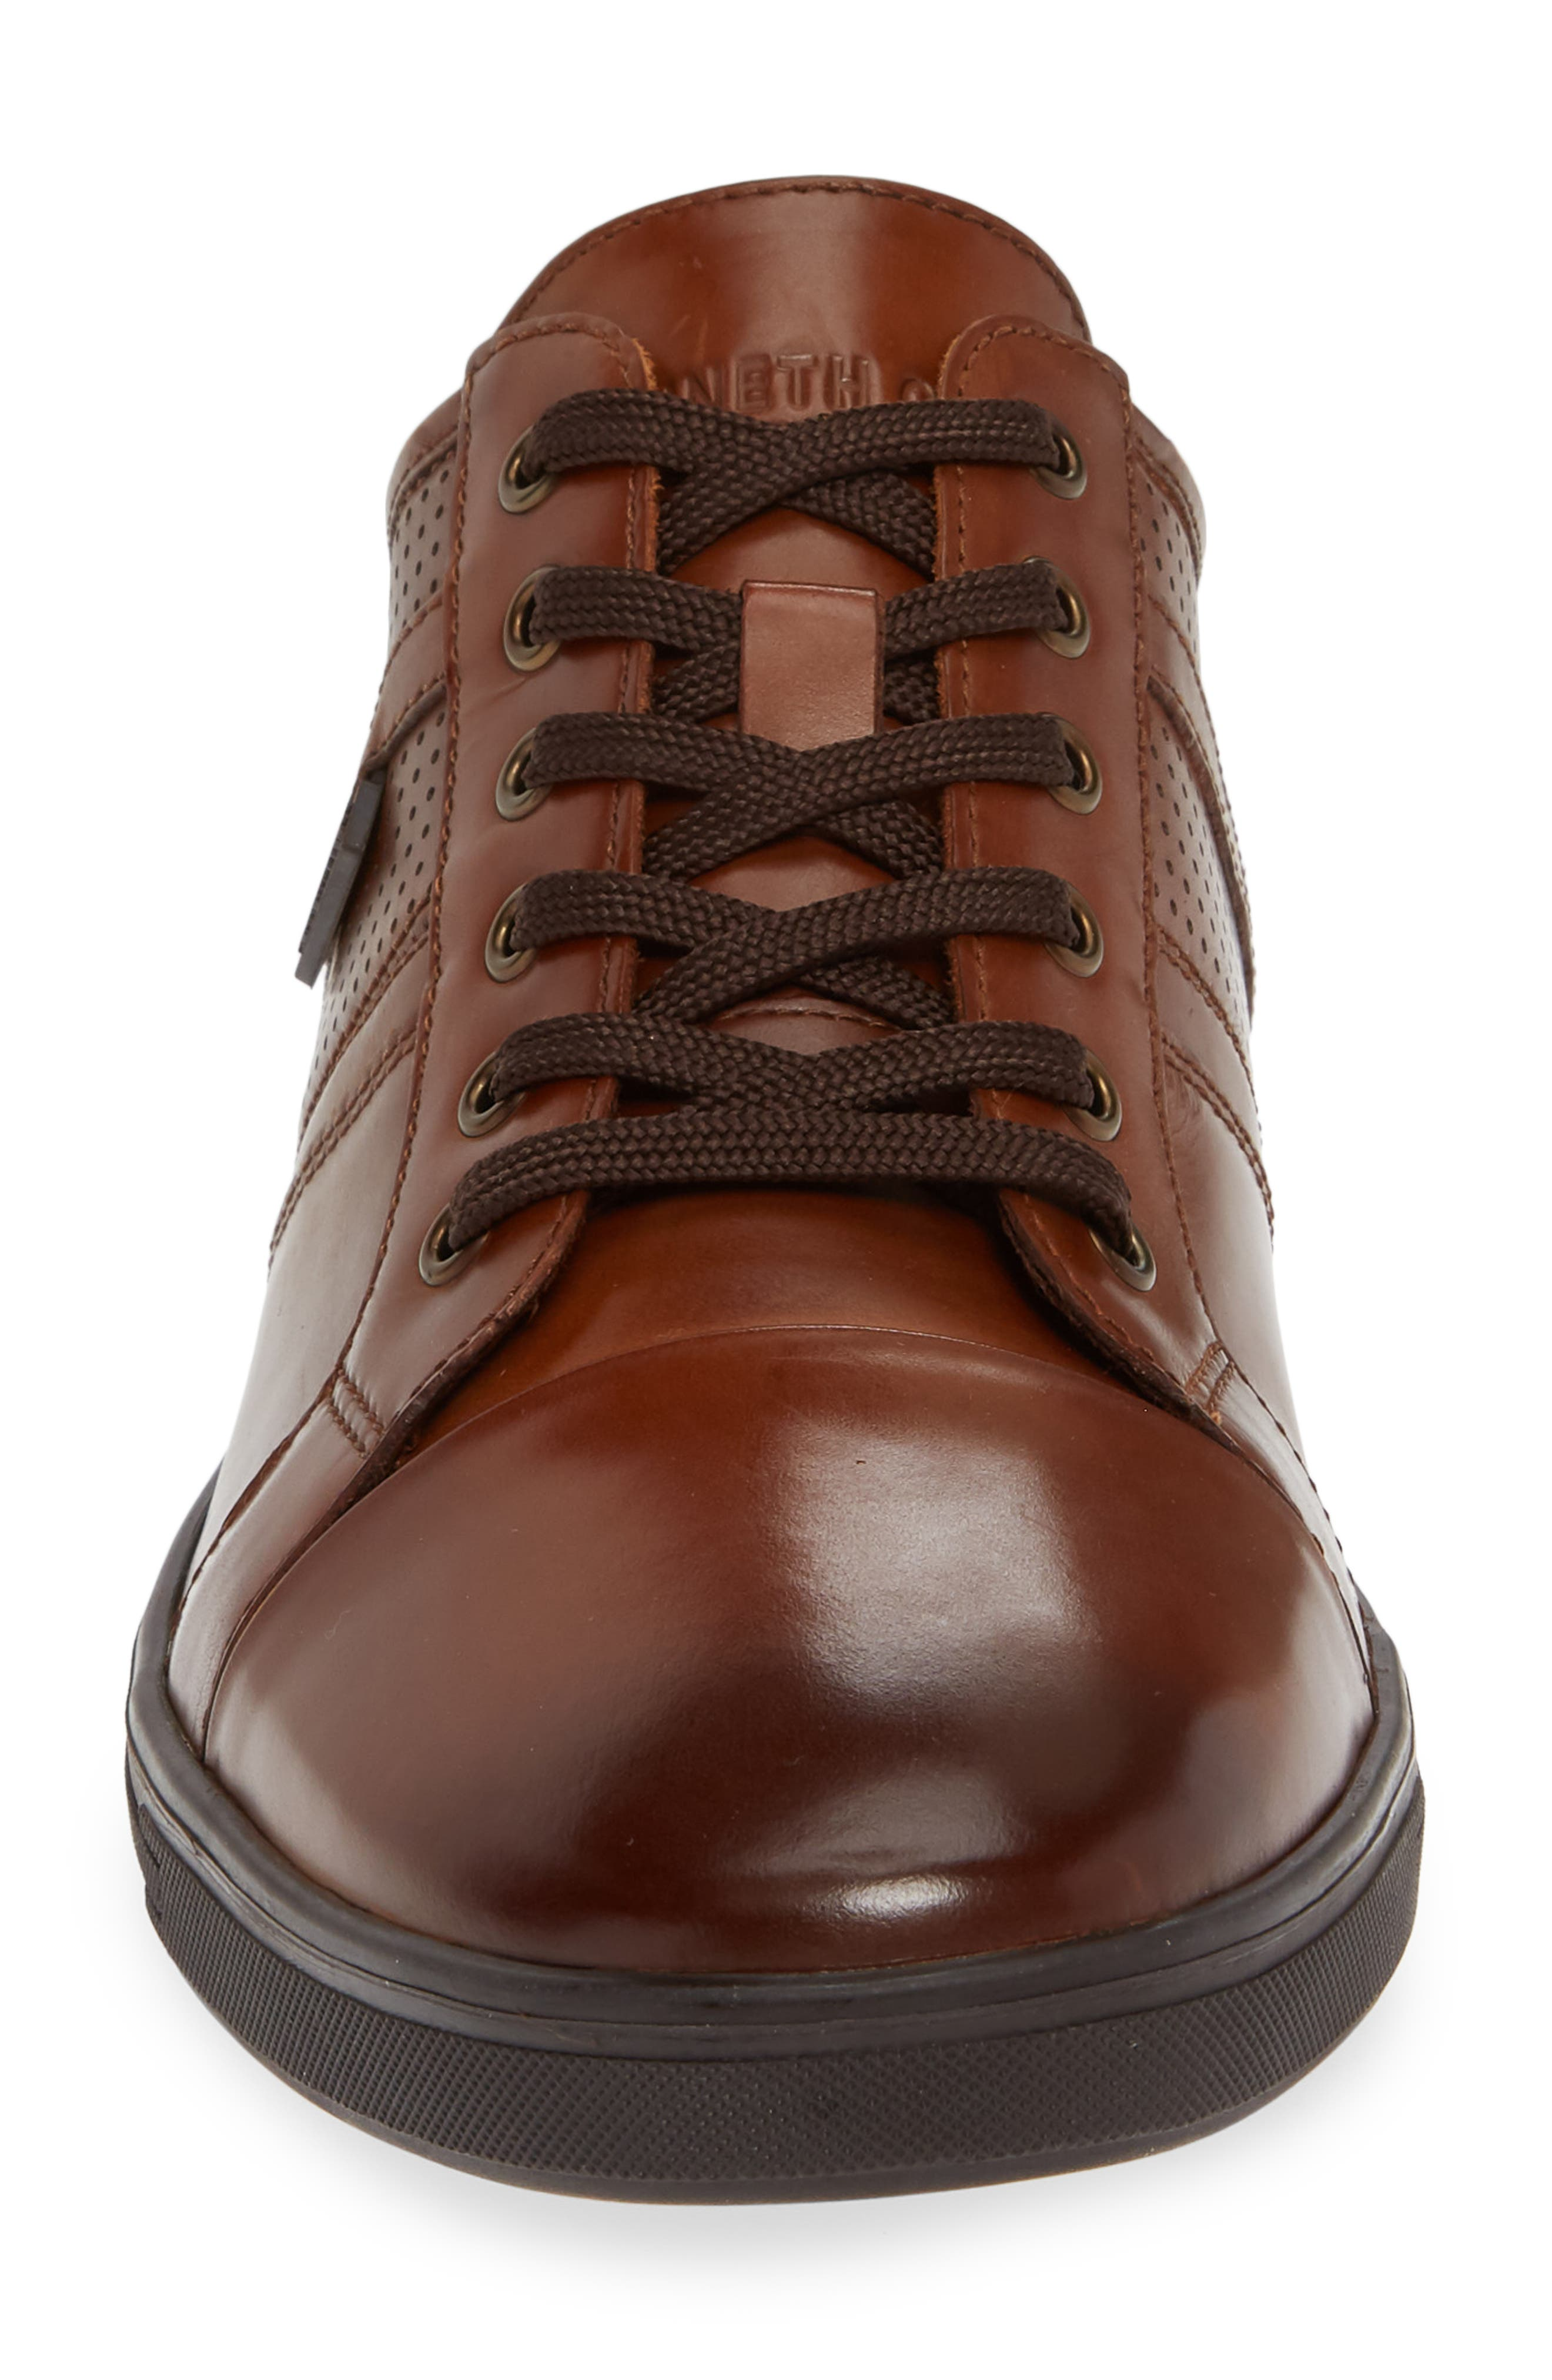 Initial Step Sneaker,                             Alternate thumbnail 4, color,                             COGNAC LEATHER